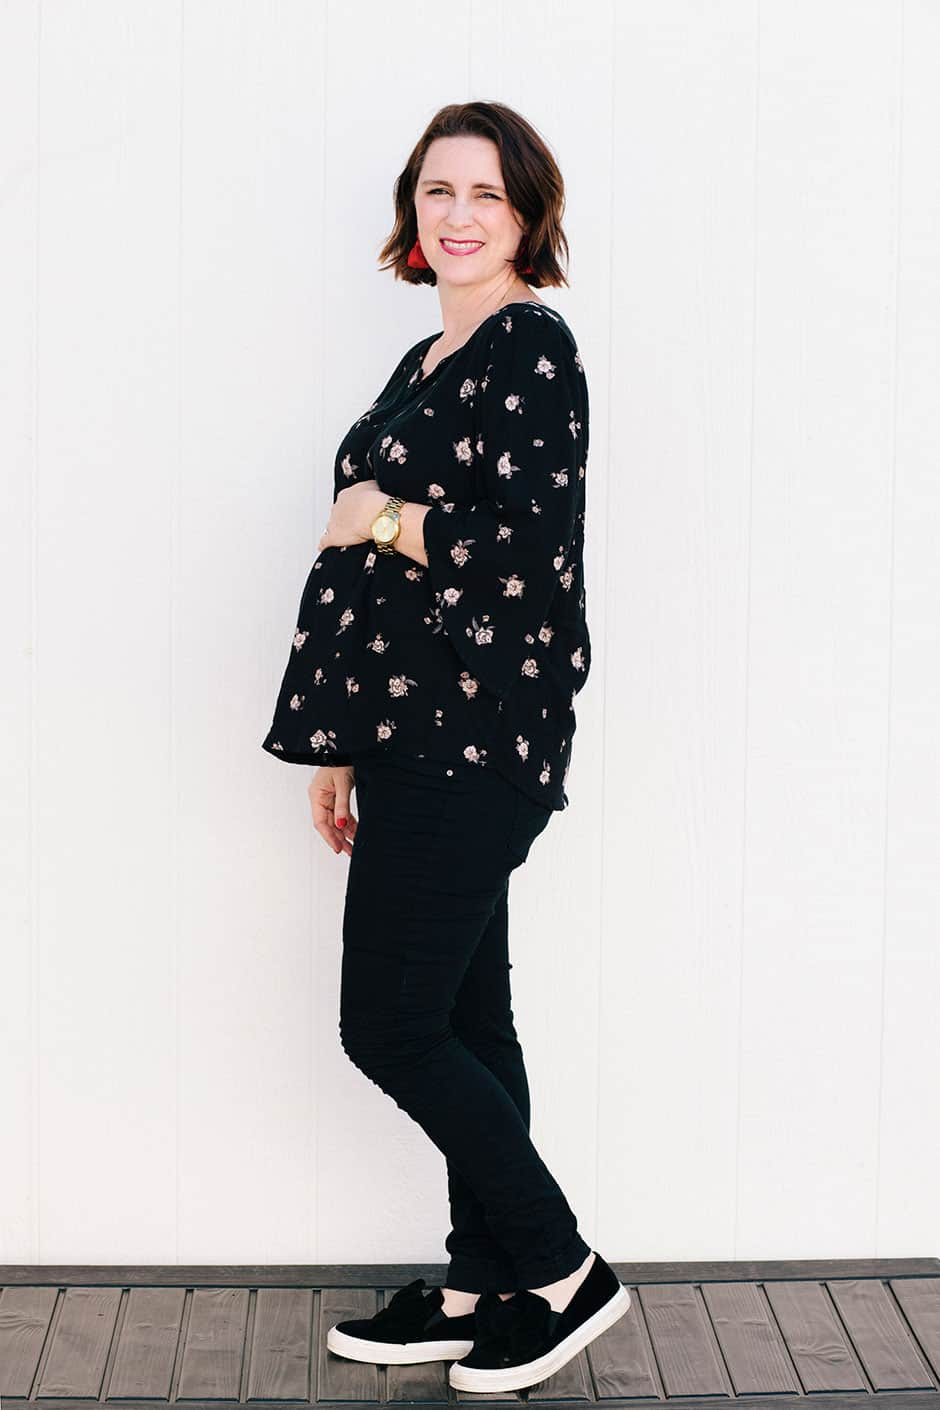 Looking for a home run sewing pattern for pregnancy and postpartum? Check out my version of the Phoenix blouse and how it's working through the third trimester and beyond! Make this DIY flowy top for your pregnancy or anytime you need a comfy, flattering blouse.